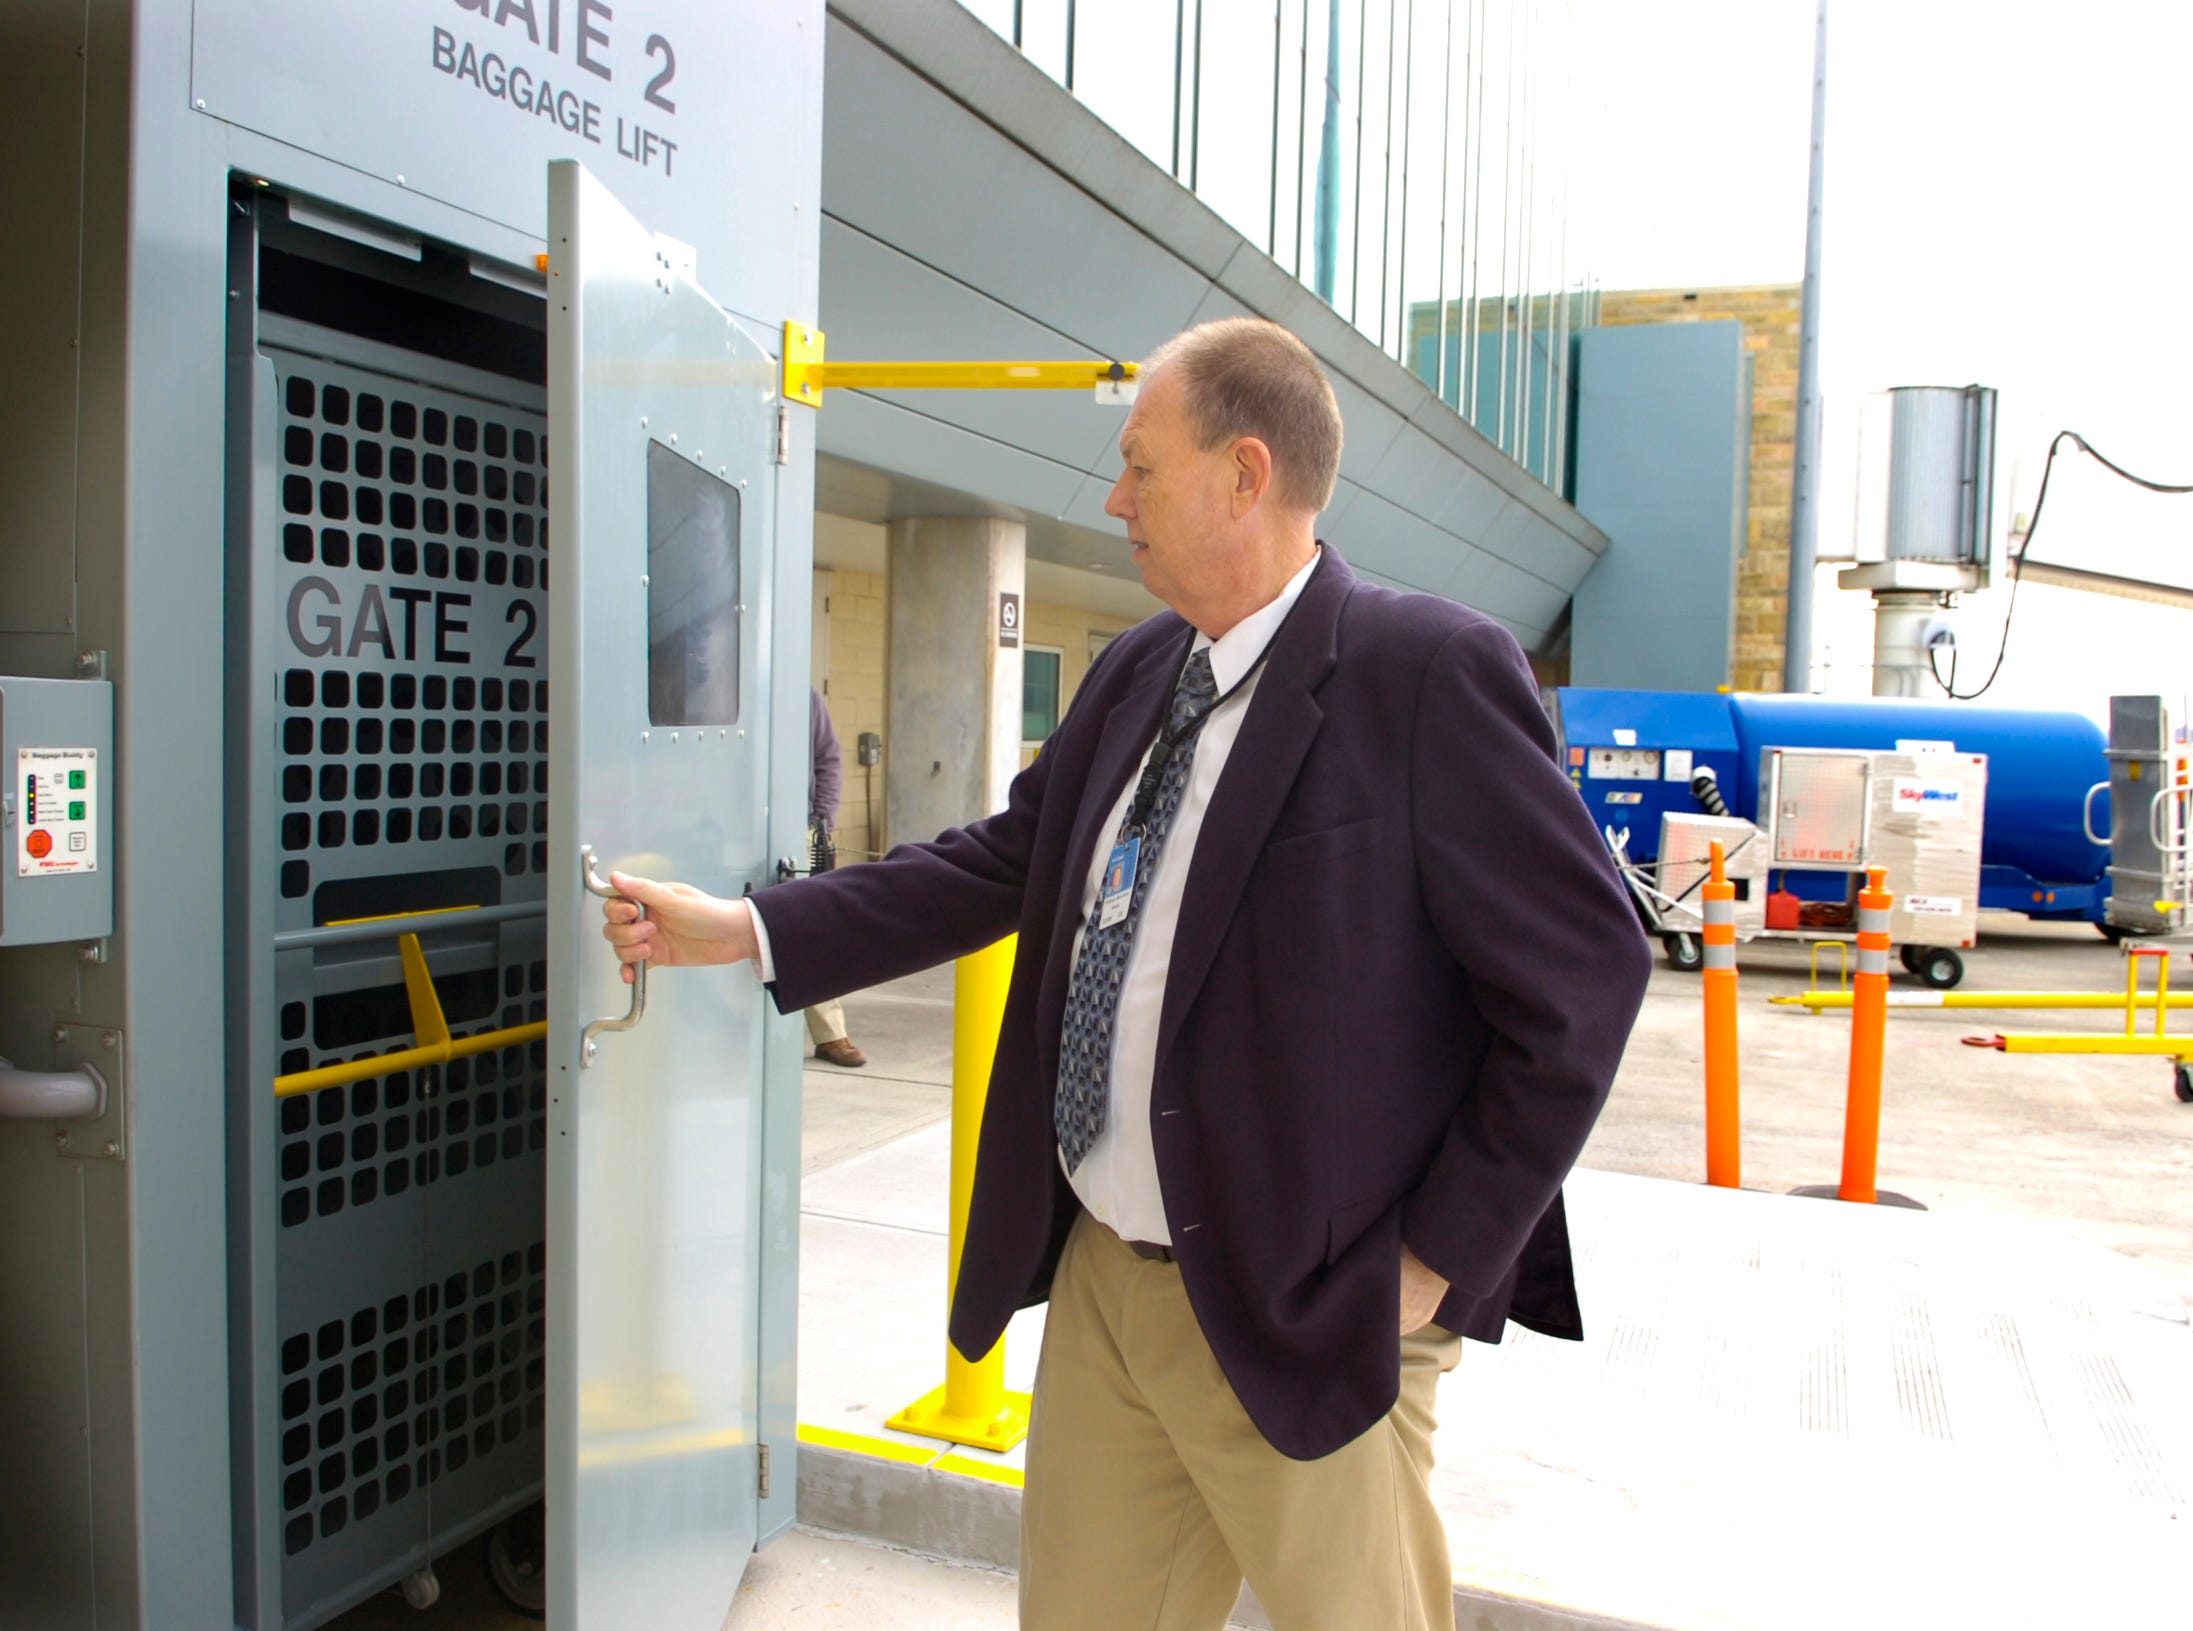 Bill Marrison, president of the Metropolitan Knoxville Airport Authority, demonstrates the Baggage Lift System that has been installed at all gates at McGhee Tyson Airport on Feb. 8, 2007. The new system reduces the need for passengers or airline personnel to transport baggage from the airport's second level to the ground level where it  is loaded on the aircraft.